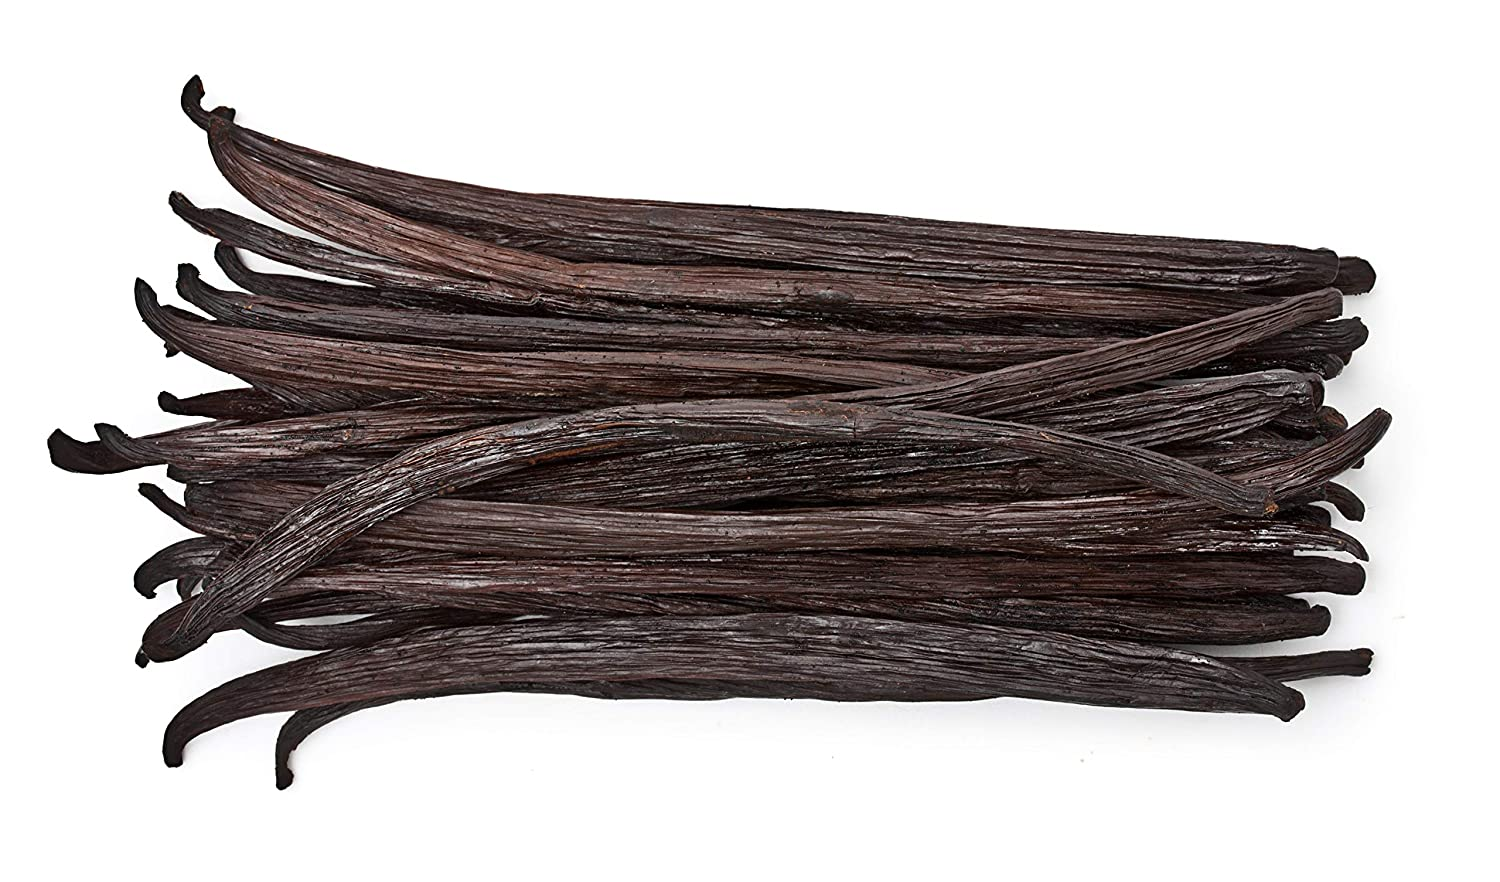 50 Vanilla Beans - Whole Gourmet Grade A Pods for Baking, Homemade Extract, Brewing, Coffee, Cooking - (Tahitian)